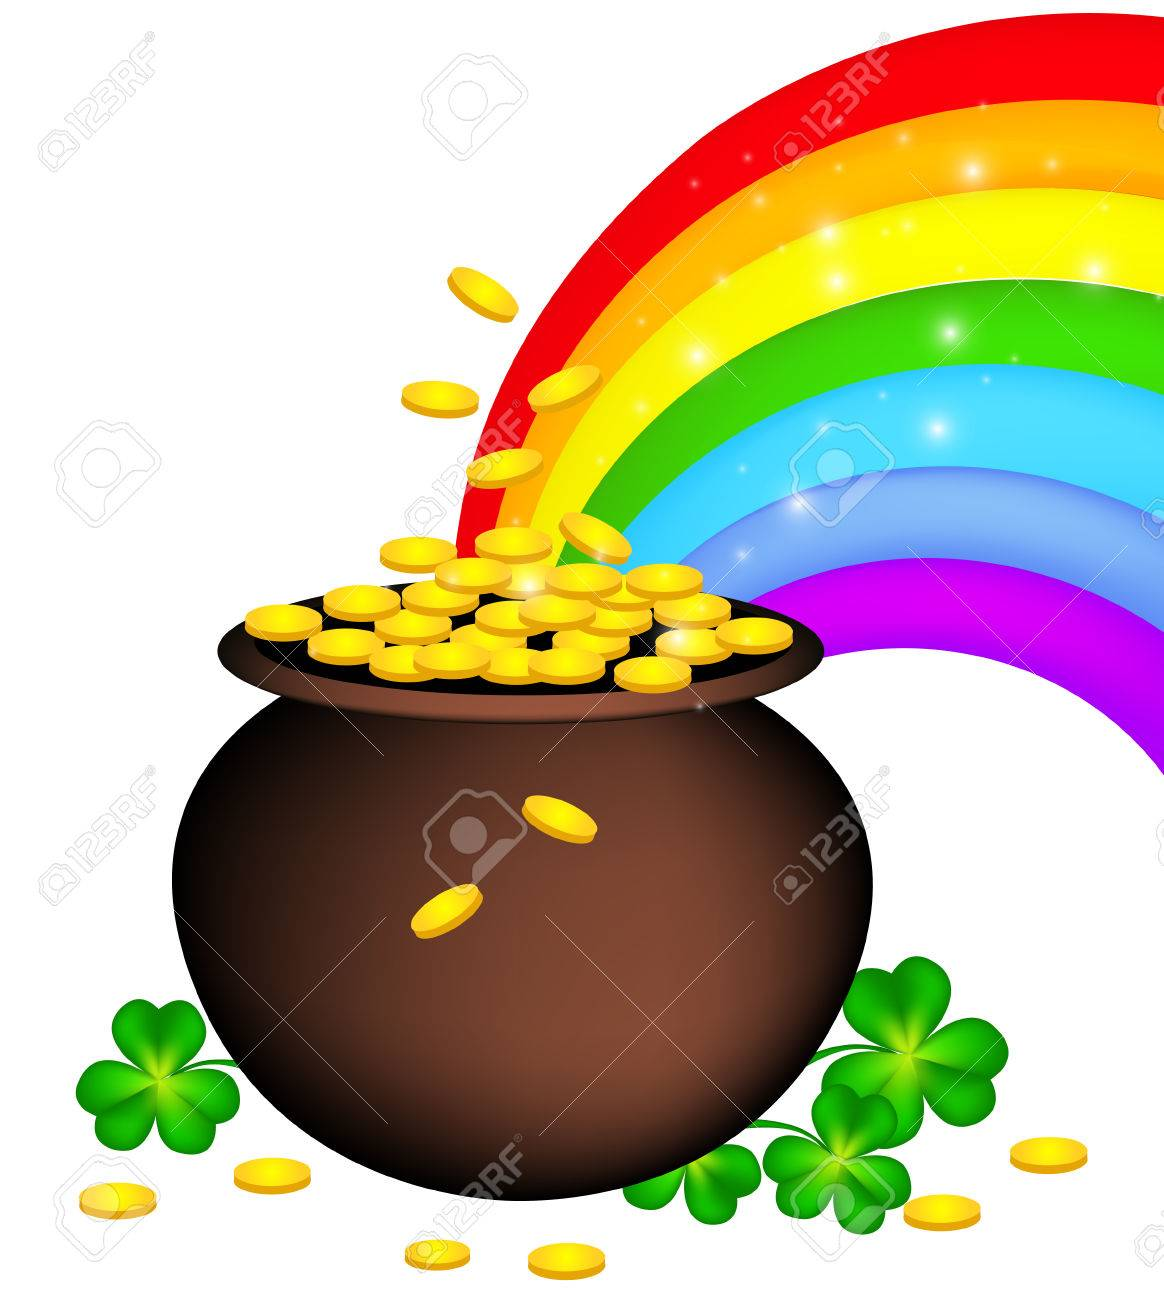 Gold Coin Pot With Shamrock And Rainbow St Patricks Day Design For Good Luck